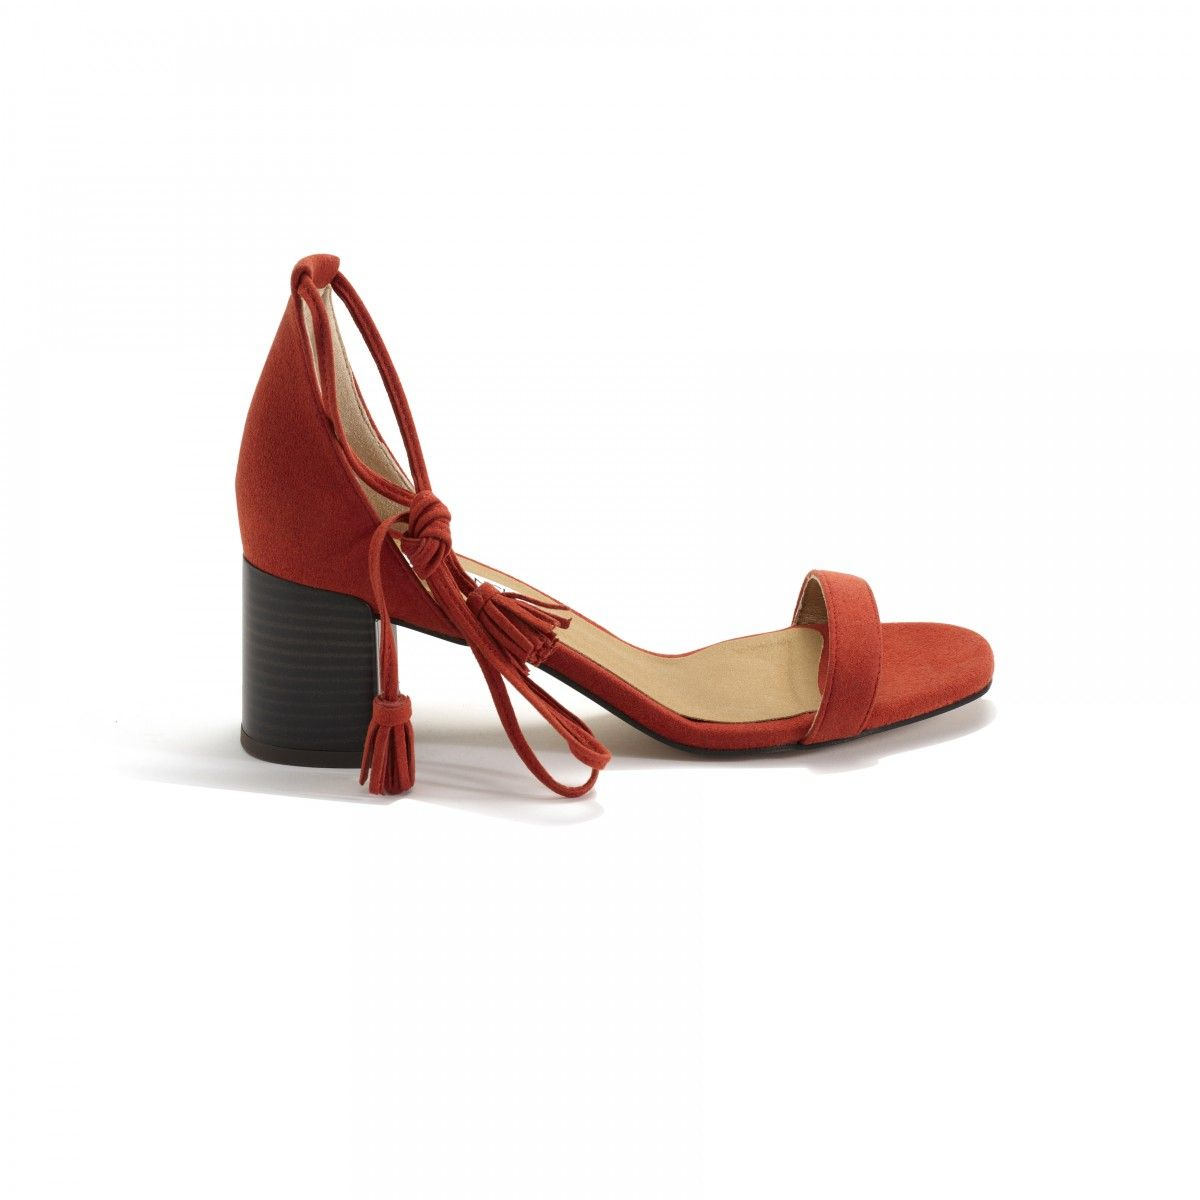 914a65edbf26 Cruelty free red sandals shoes - ByBlanch ethical shoe brand online ...